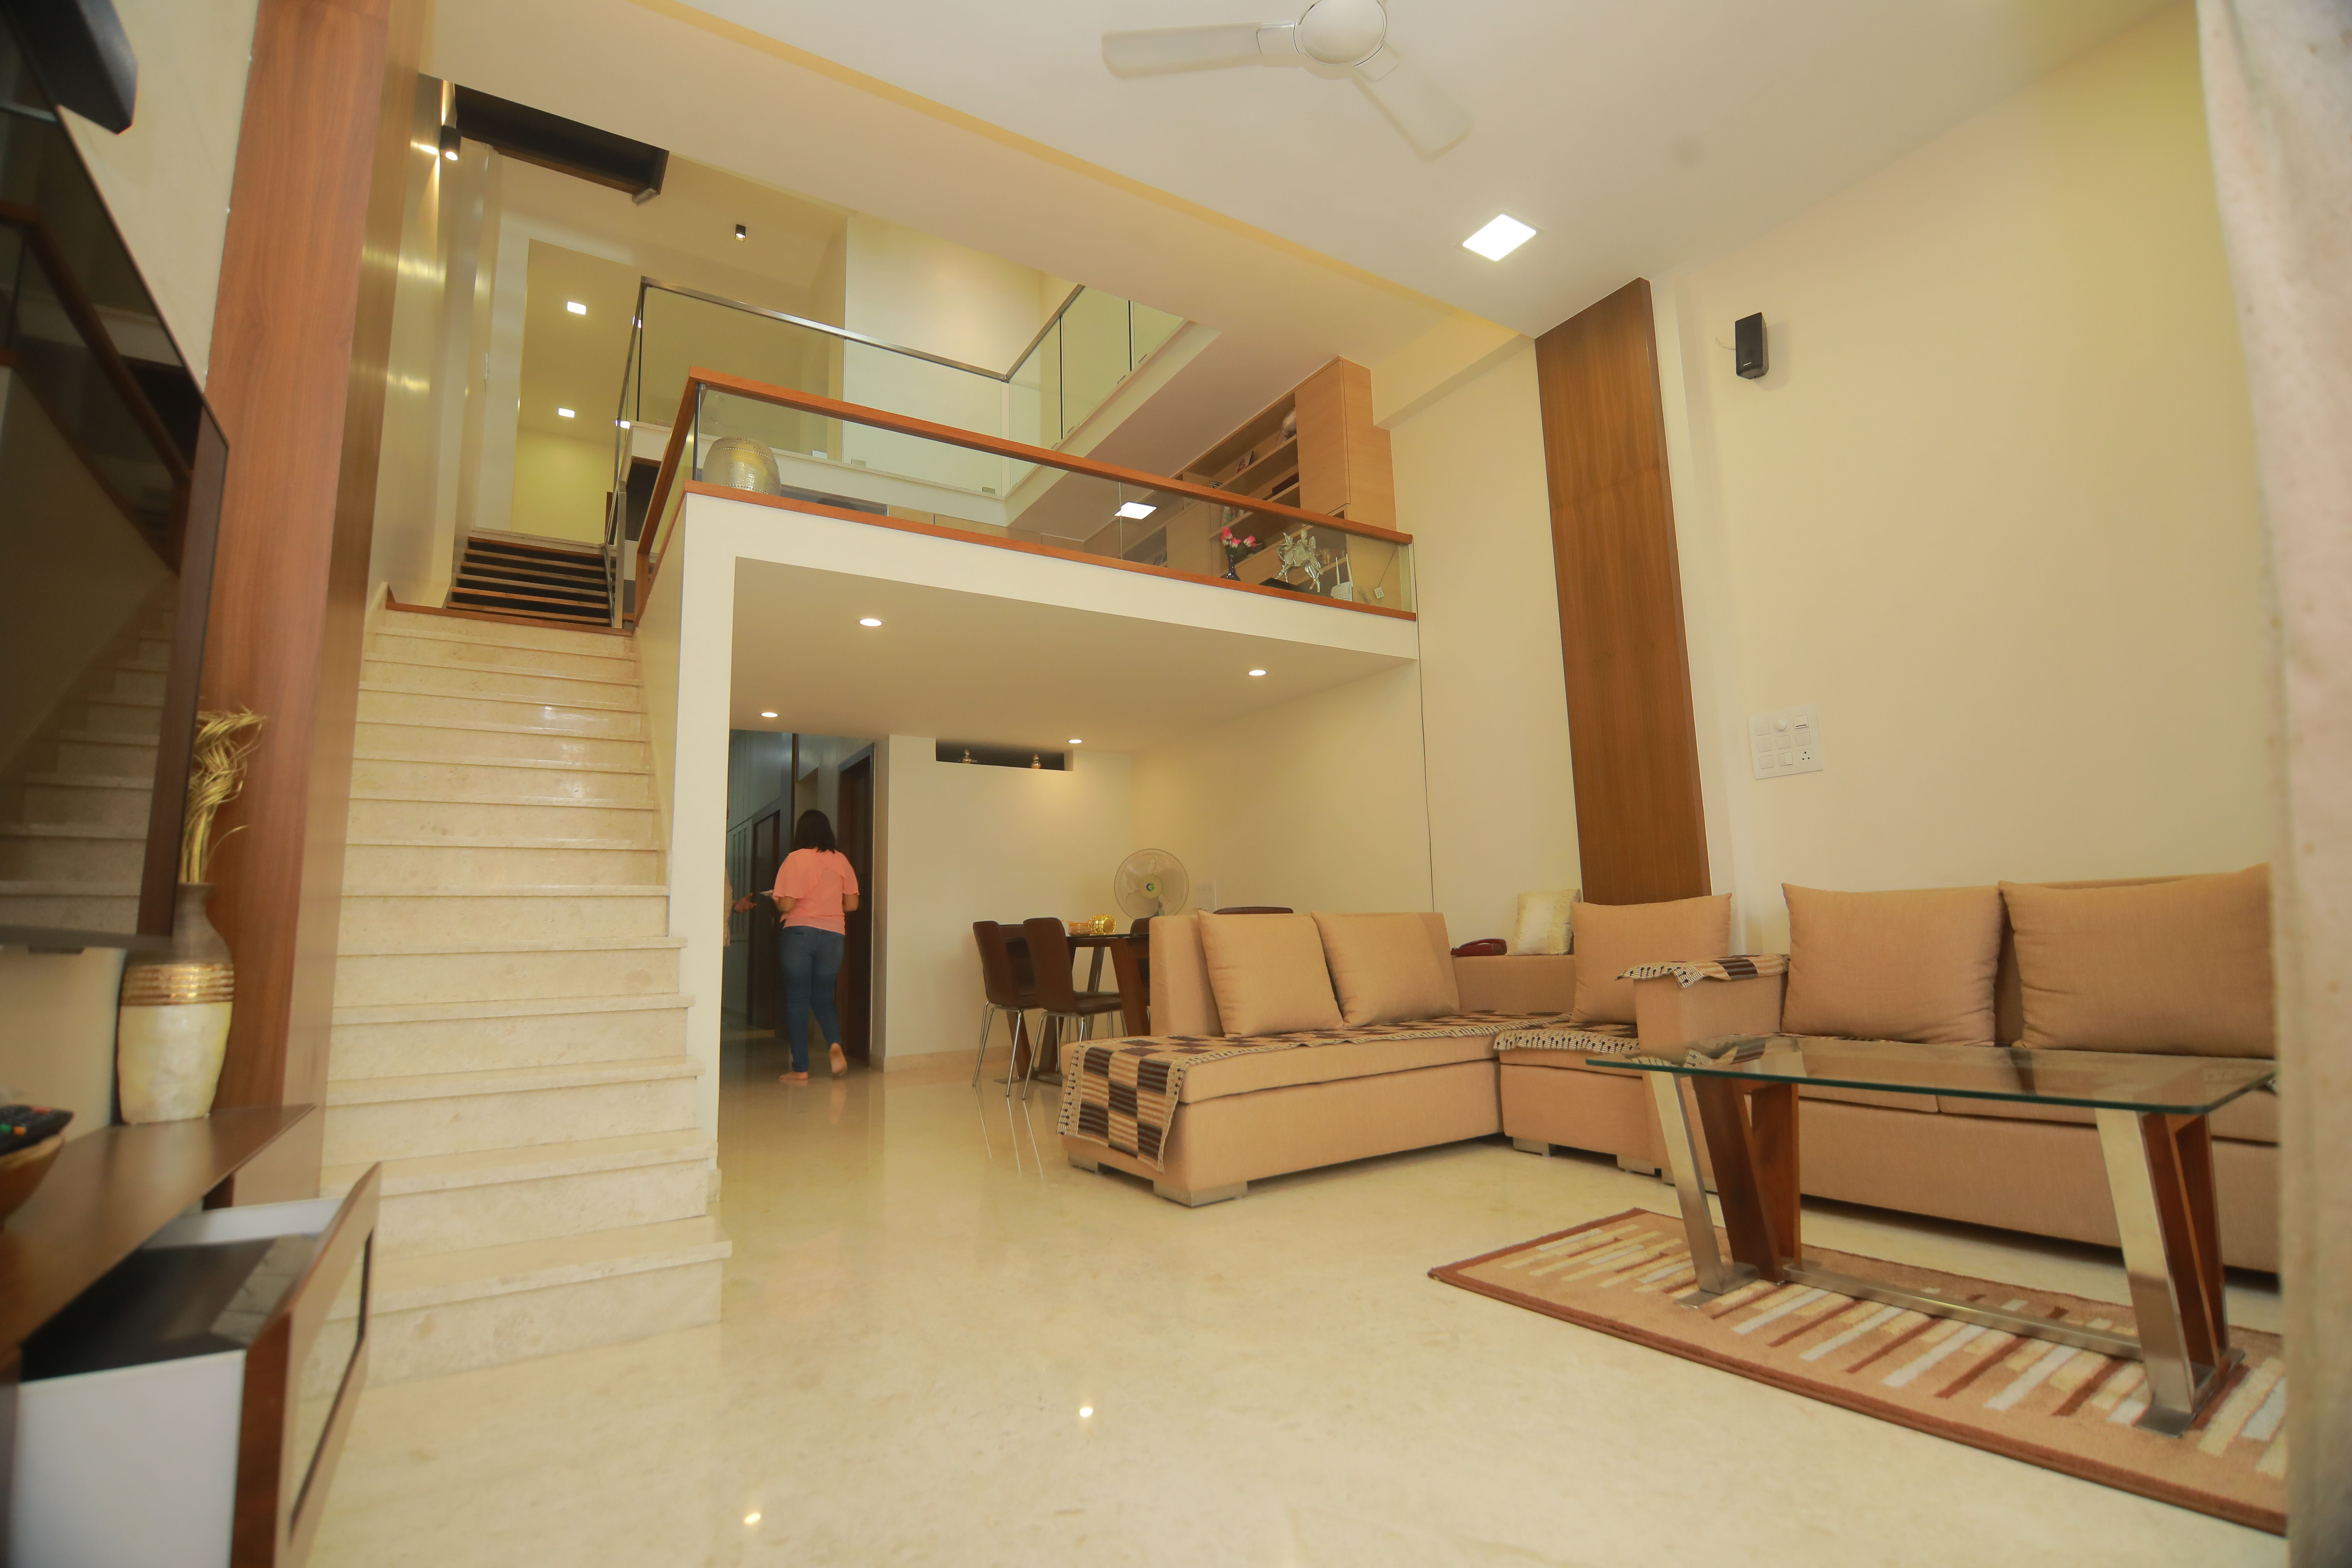 Residence Floating Space Living Space Natural Day Light Living Spaces Residences Architect